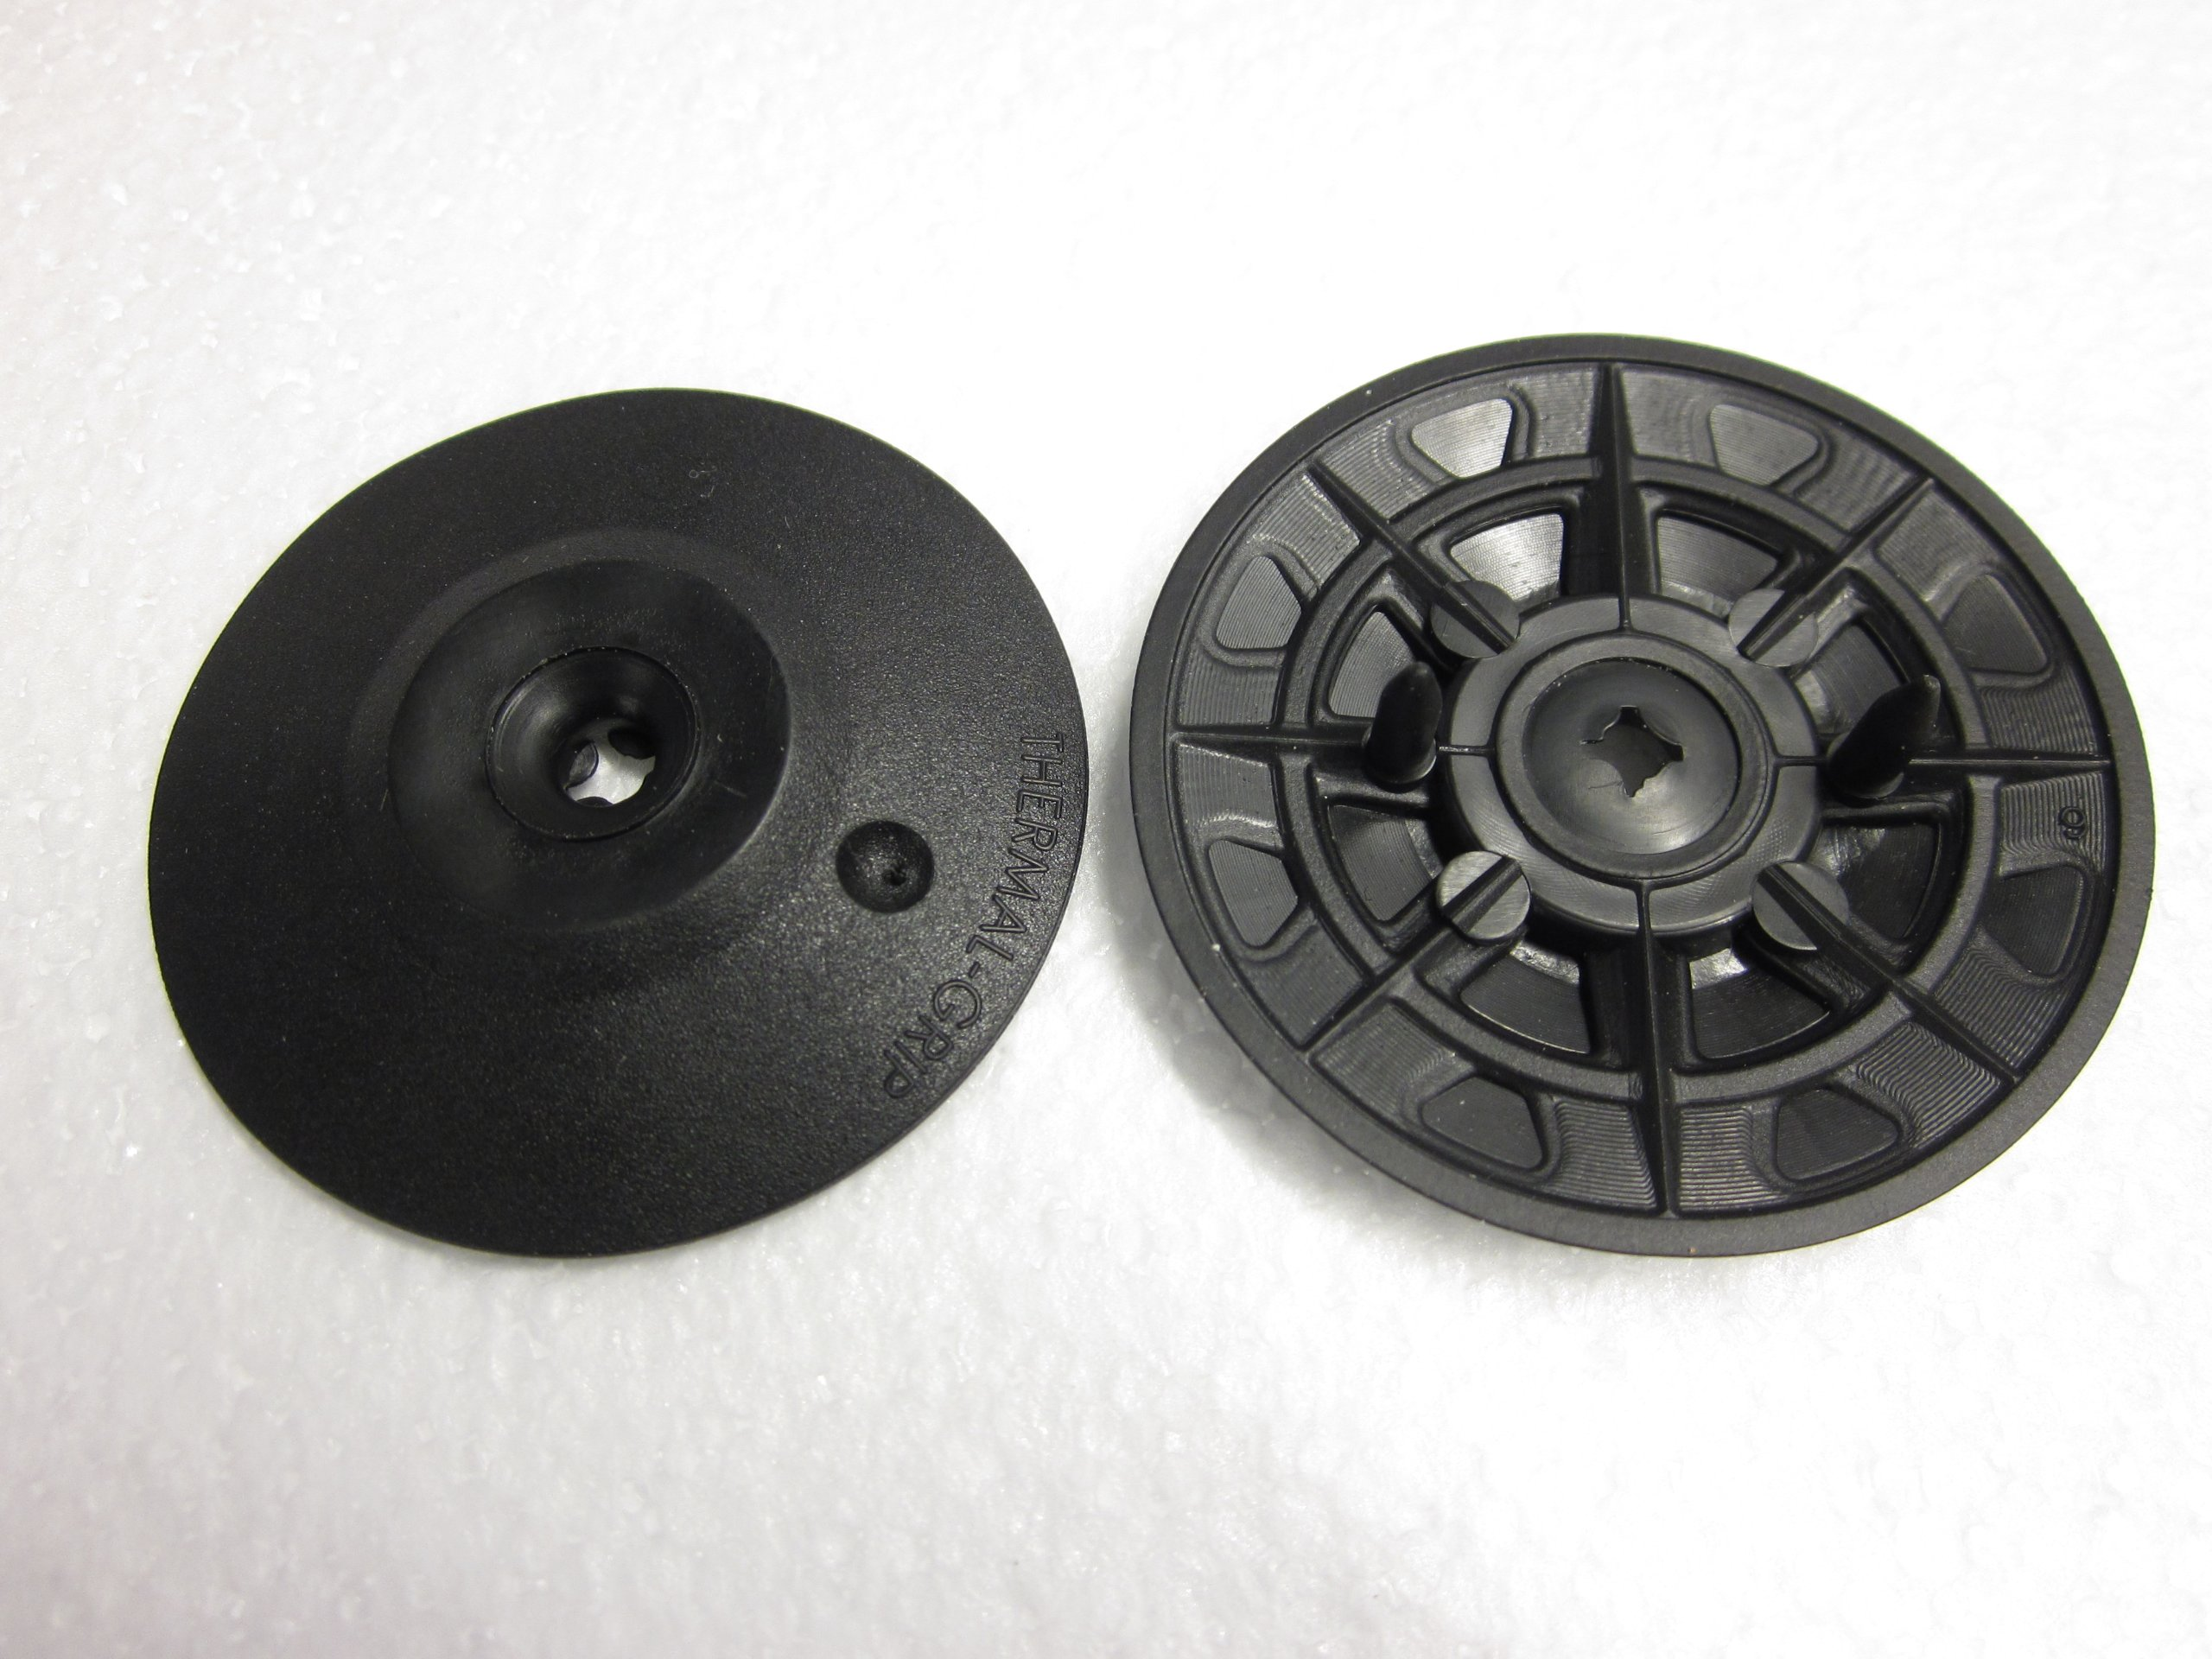 Thermal-Grip ci Prong Washer by THERMAL-GRIP